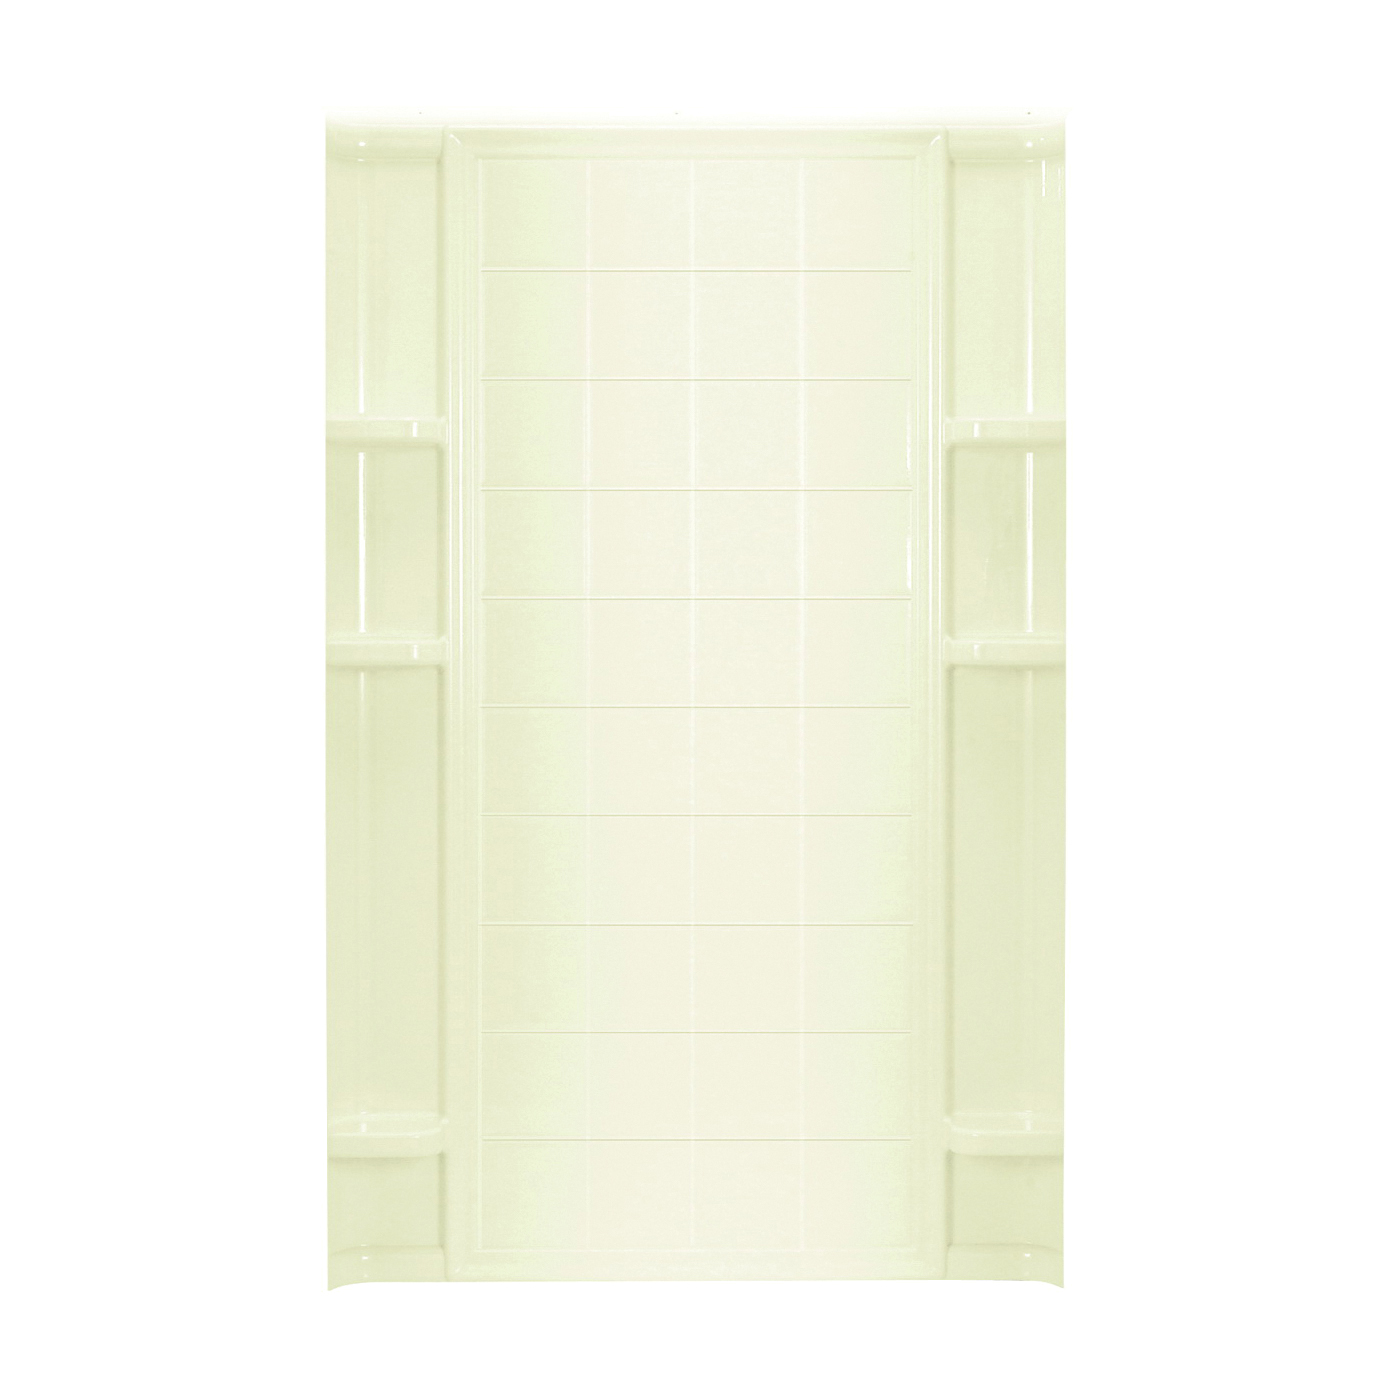 Picture of Sterling Ensemble 72122100-96 Shower Back Wall, 48 in W, Vikrell, Biscuit, High-Gloss